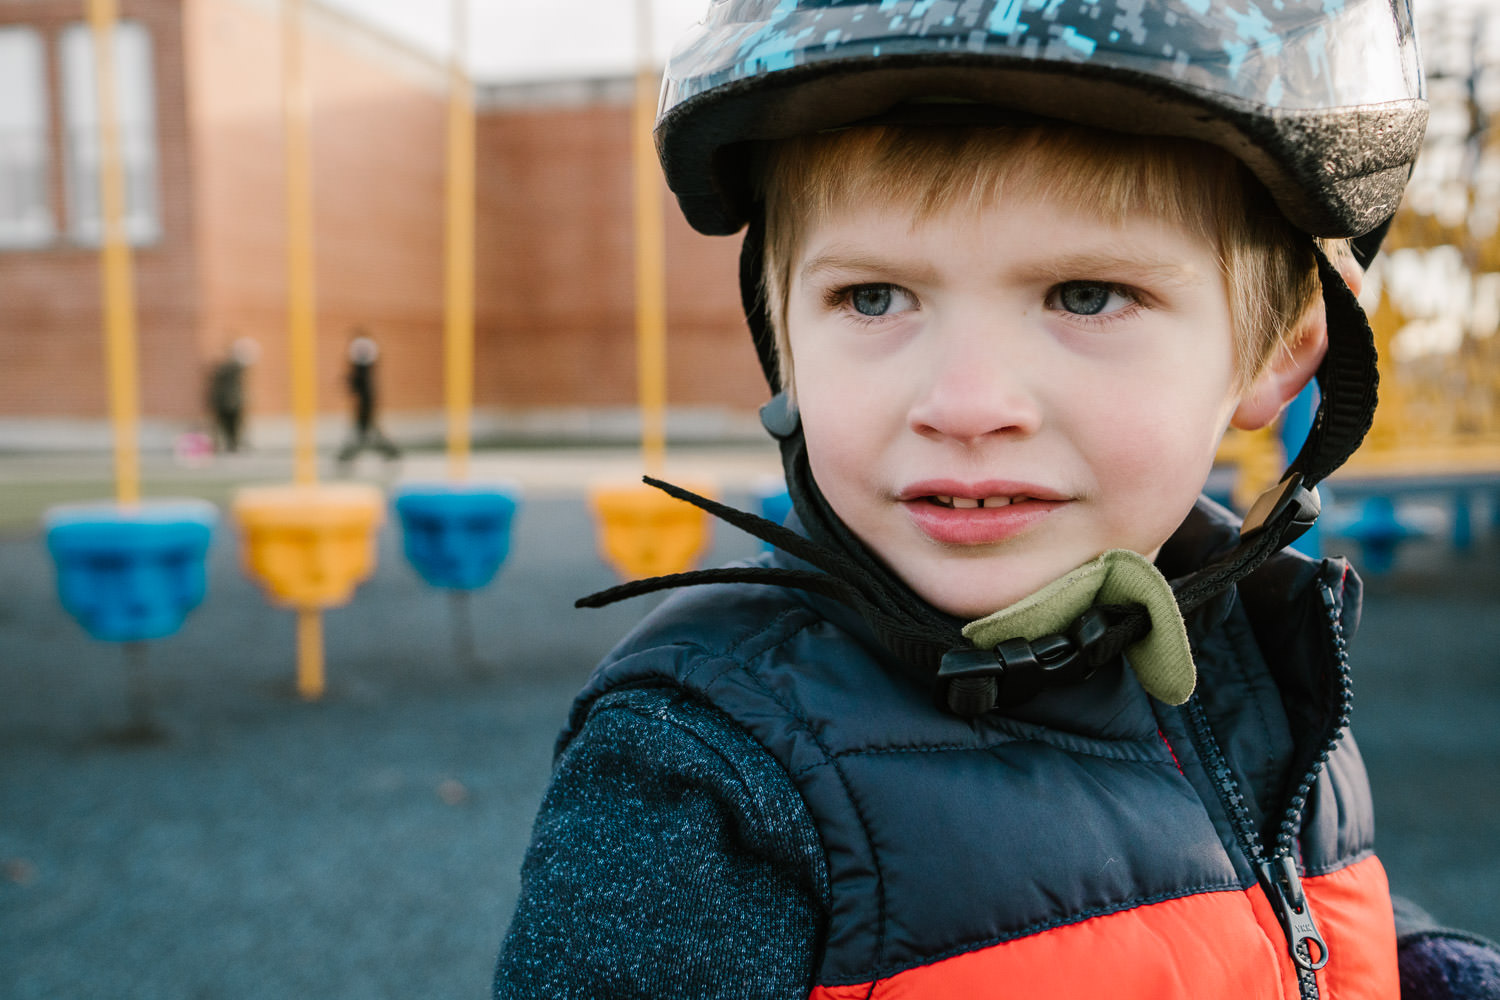 A little boy in a bike helmet at the playground.